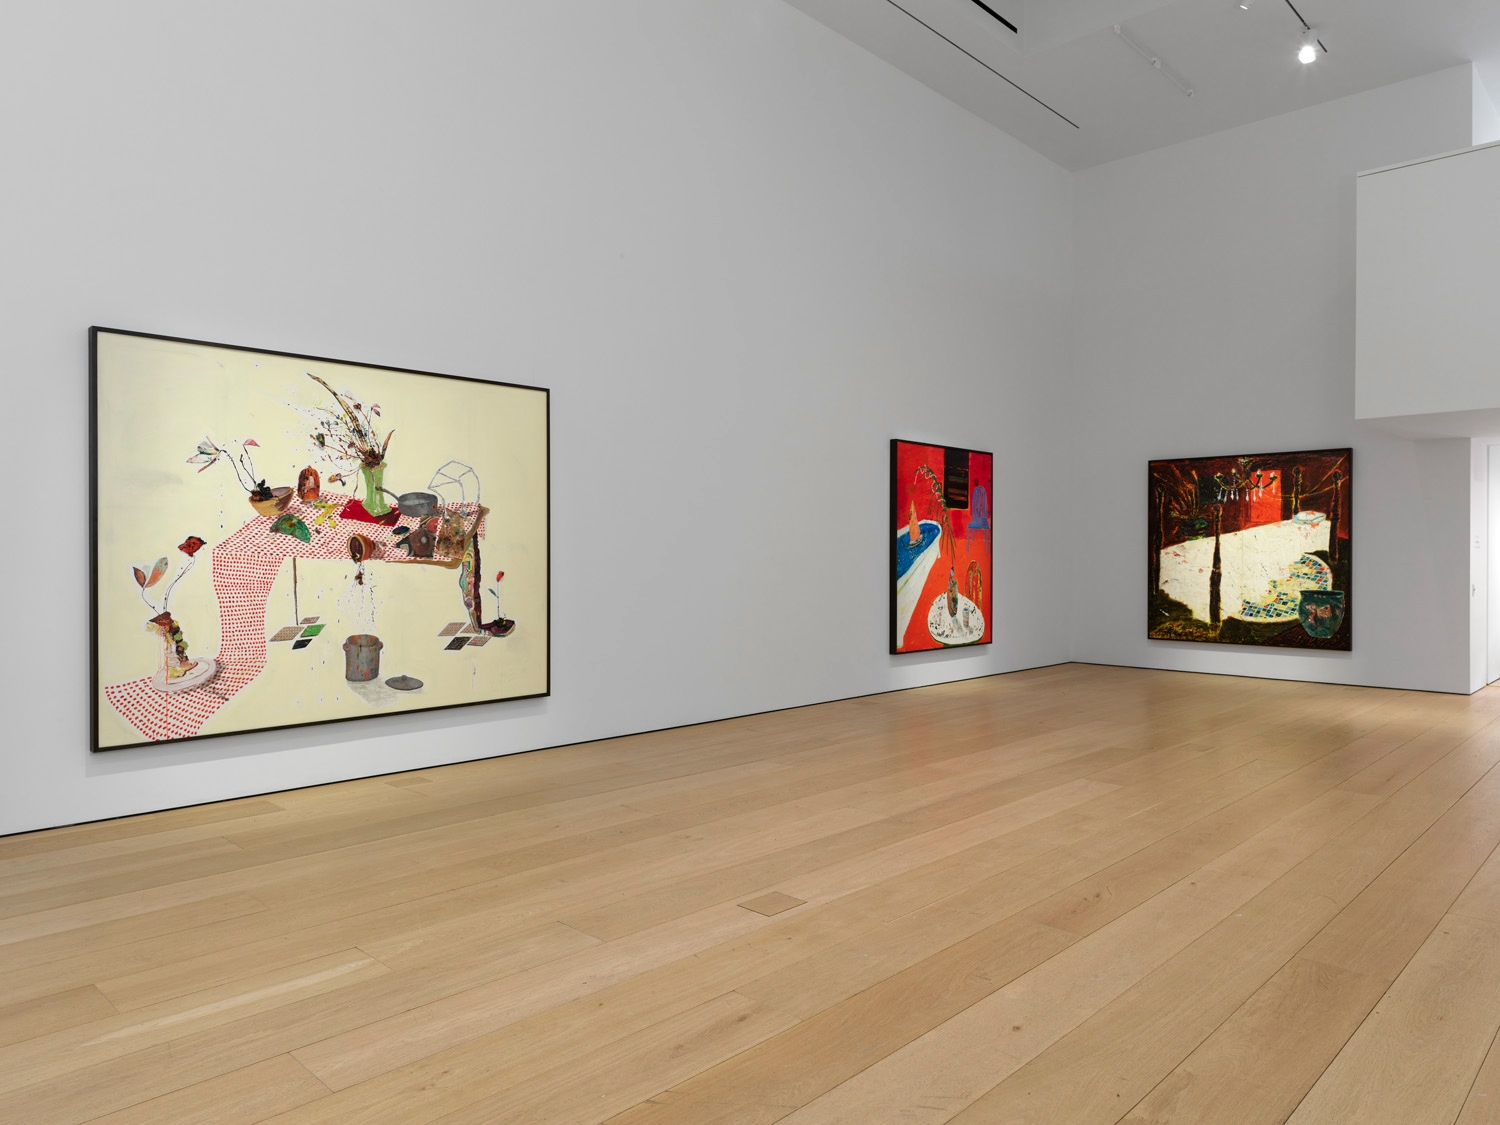 Fourth installation view of the exhibition Angel Otero: The Fortune of Having Been There at Lehmann Maupin in New York